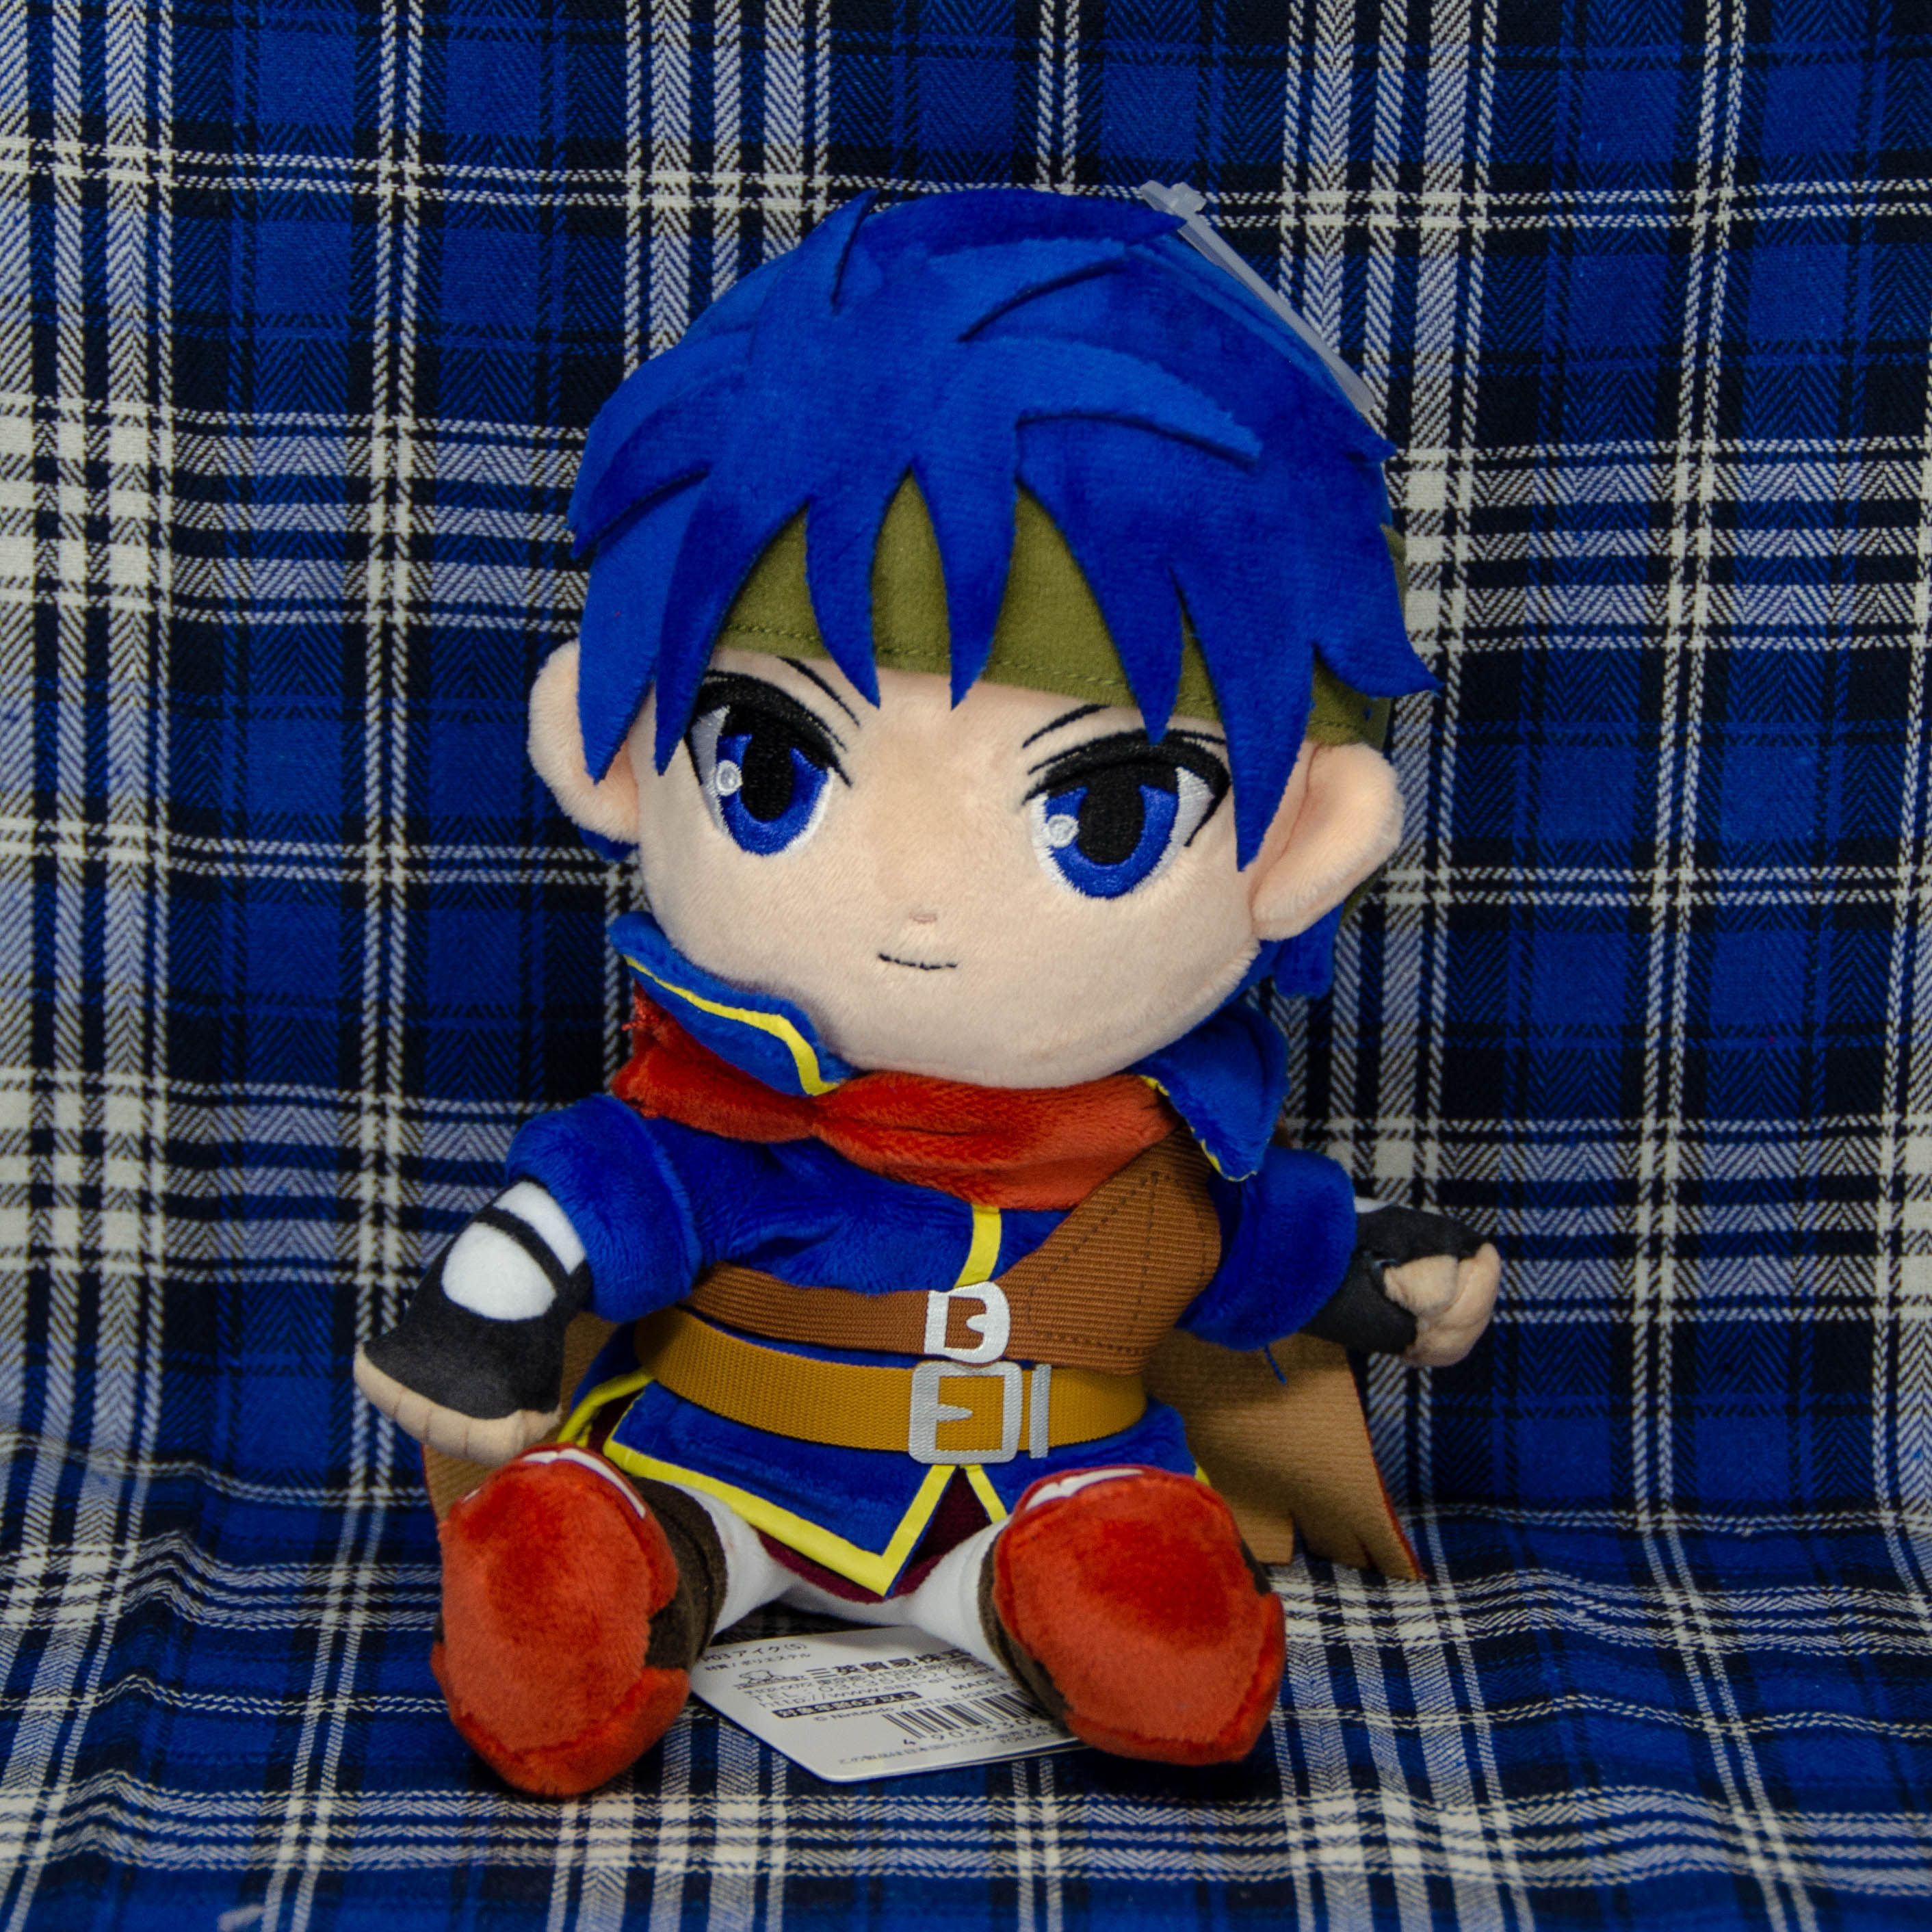 FP03 - Ike (All-Star Collection)